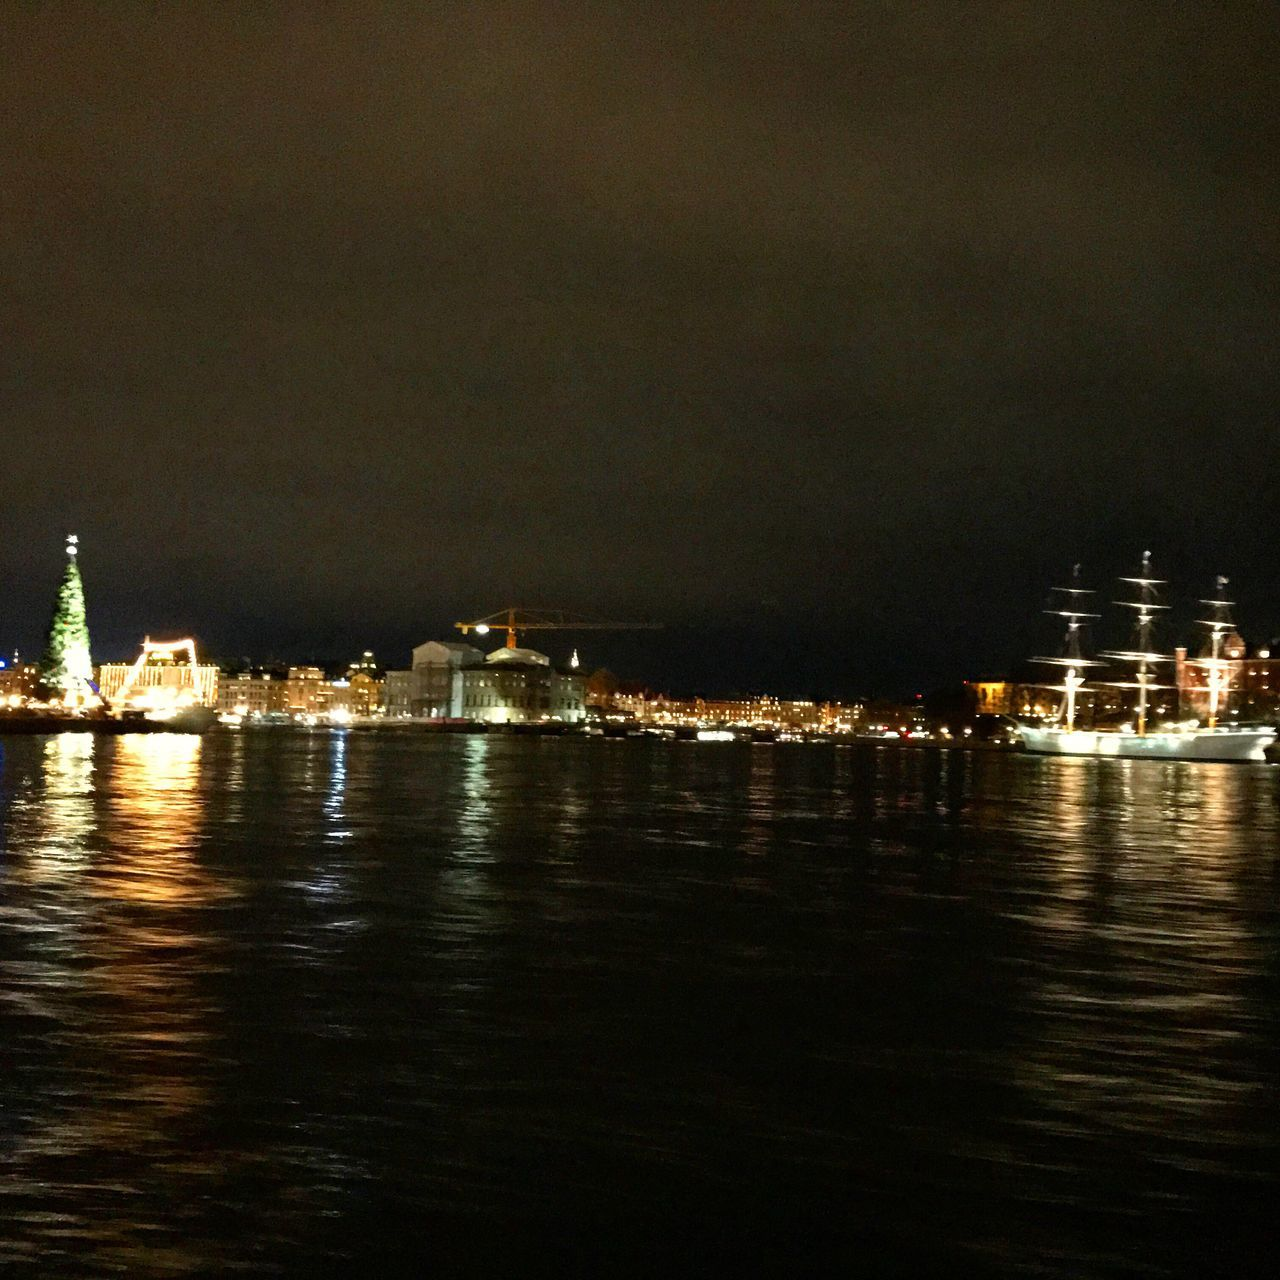 Night Water Nightcity Stockholm Sweden IPhoneography IPhone 7 IPhone Photography